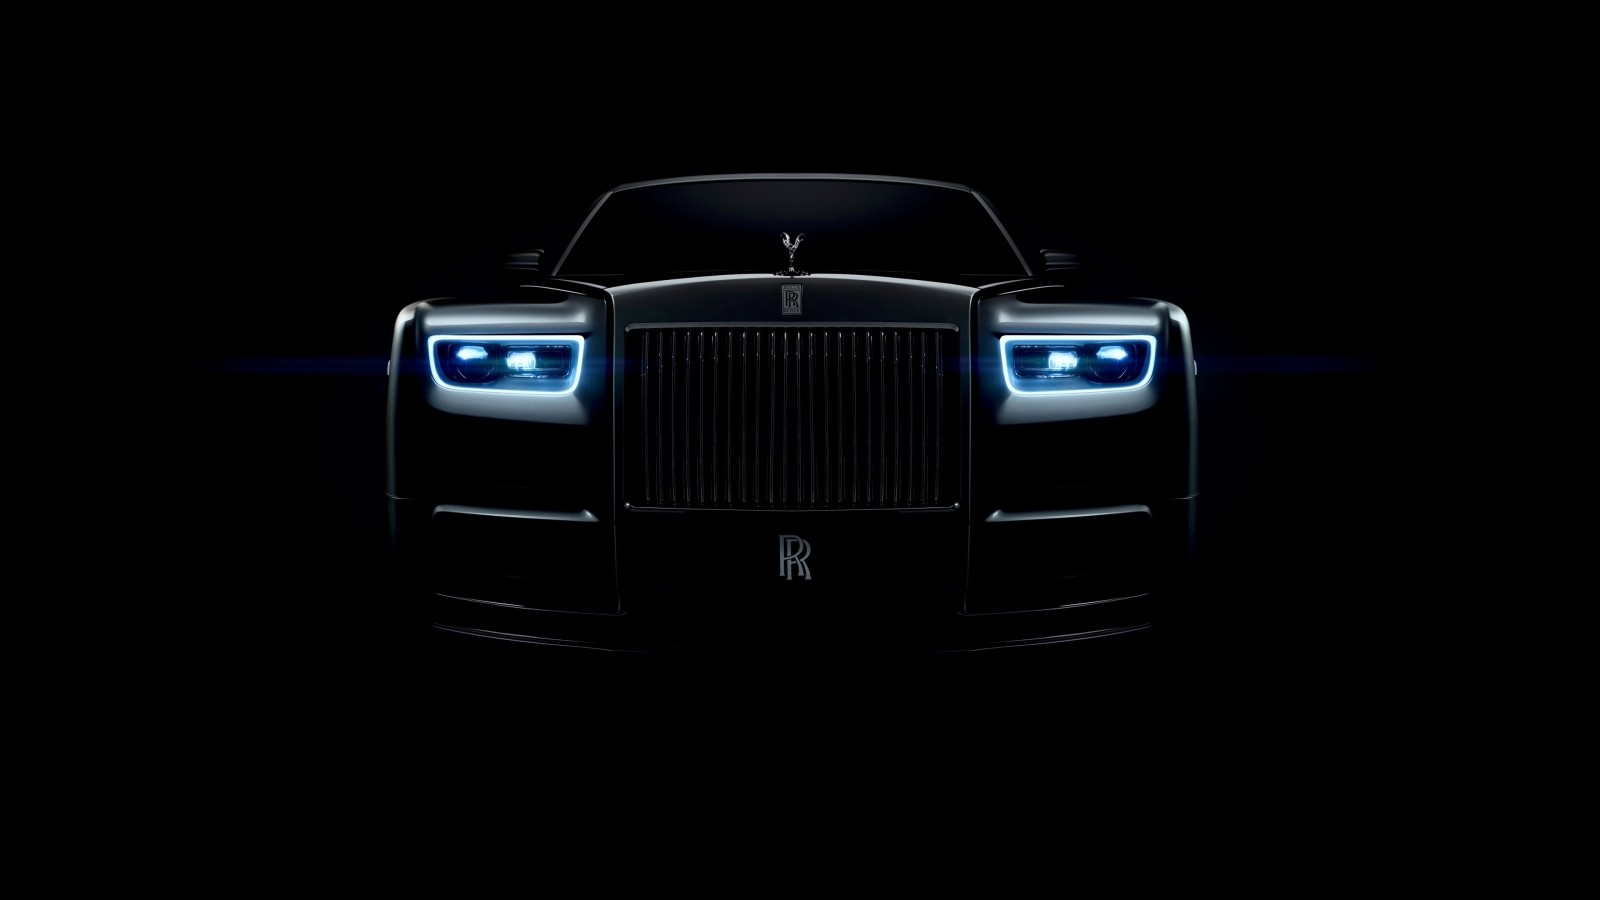 Cute Wallpapers Images Download Rolls Royce Phantom 2018 4k Wallpapers Hd Wallpapers